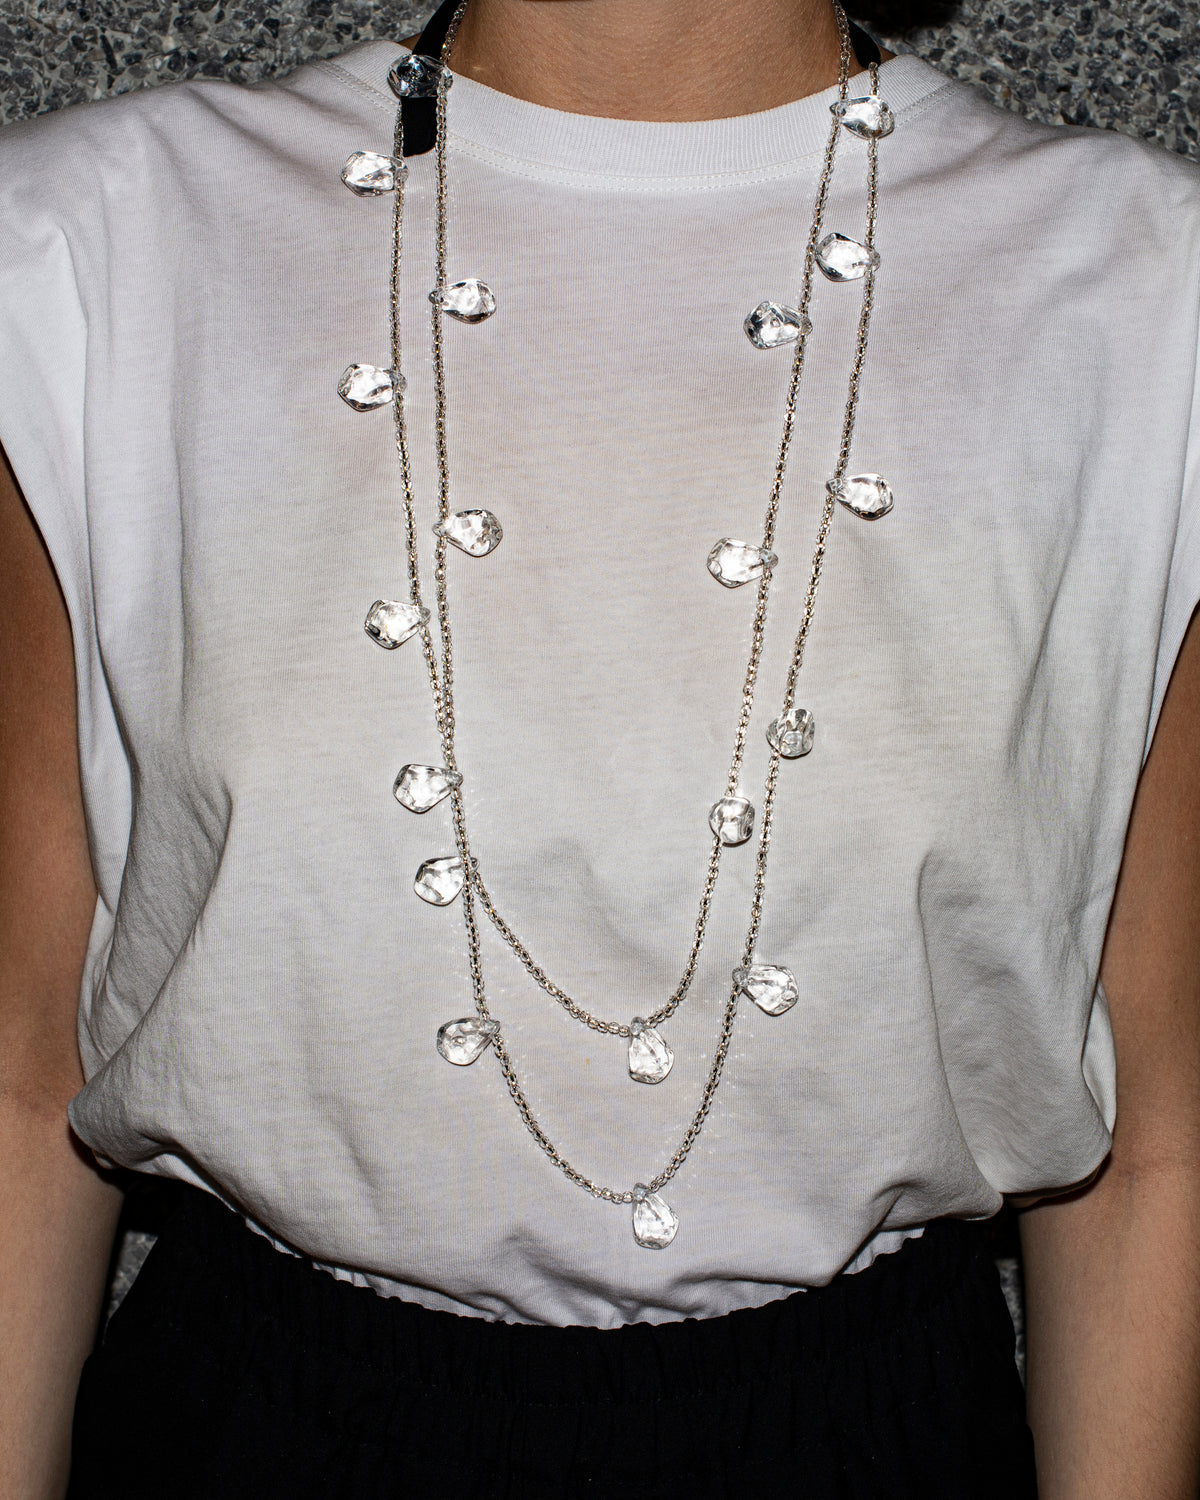 Maria Calderara - Necklace - Ice-Silver Crystal